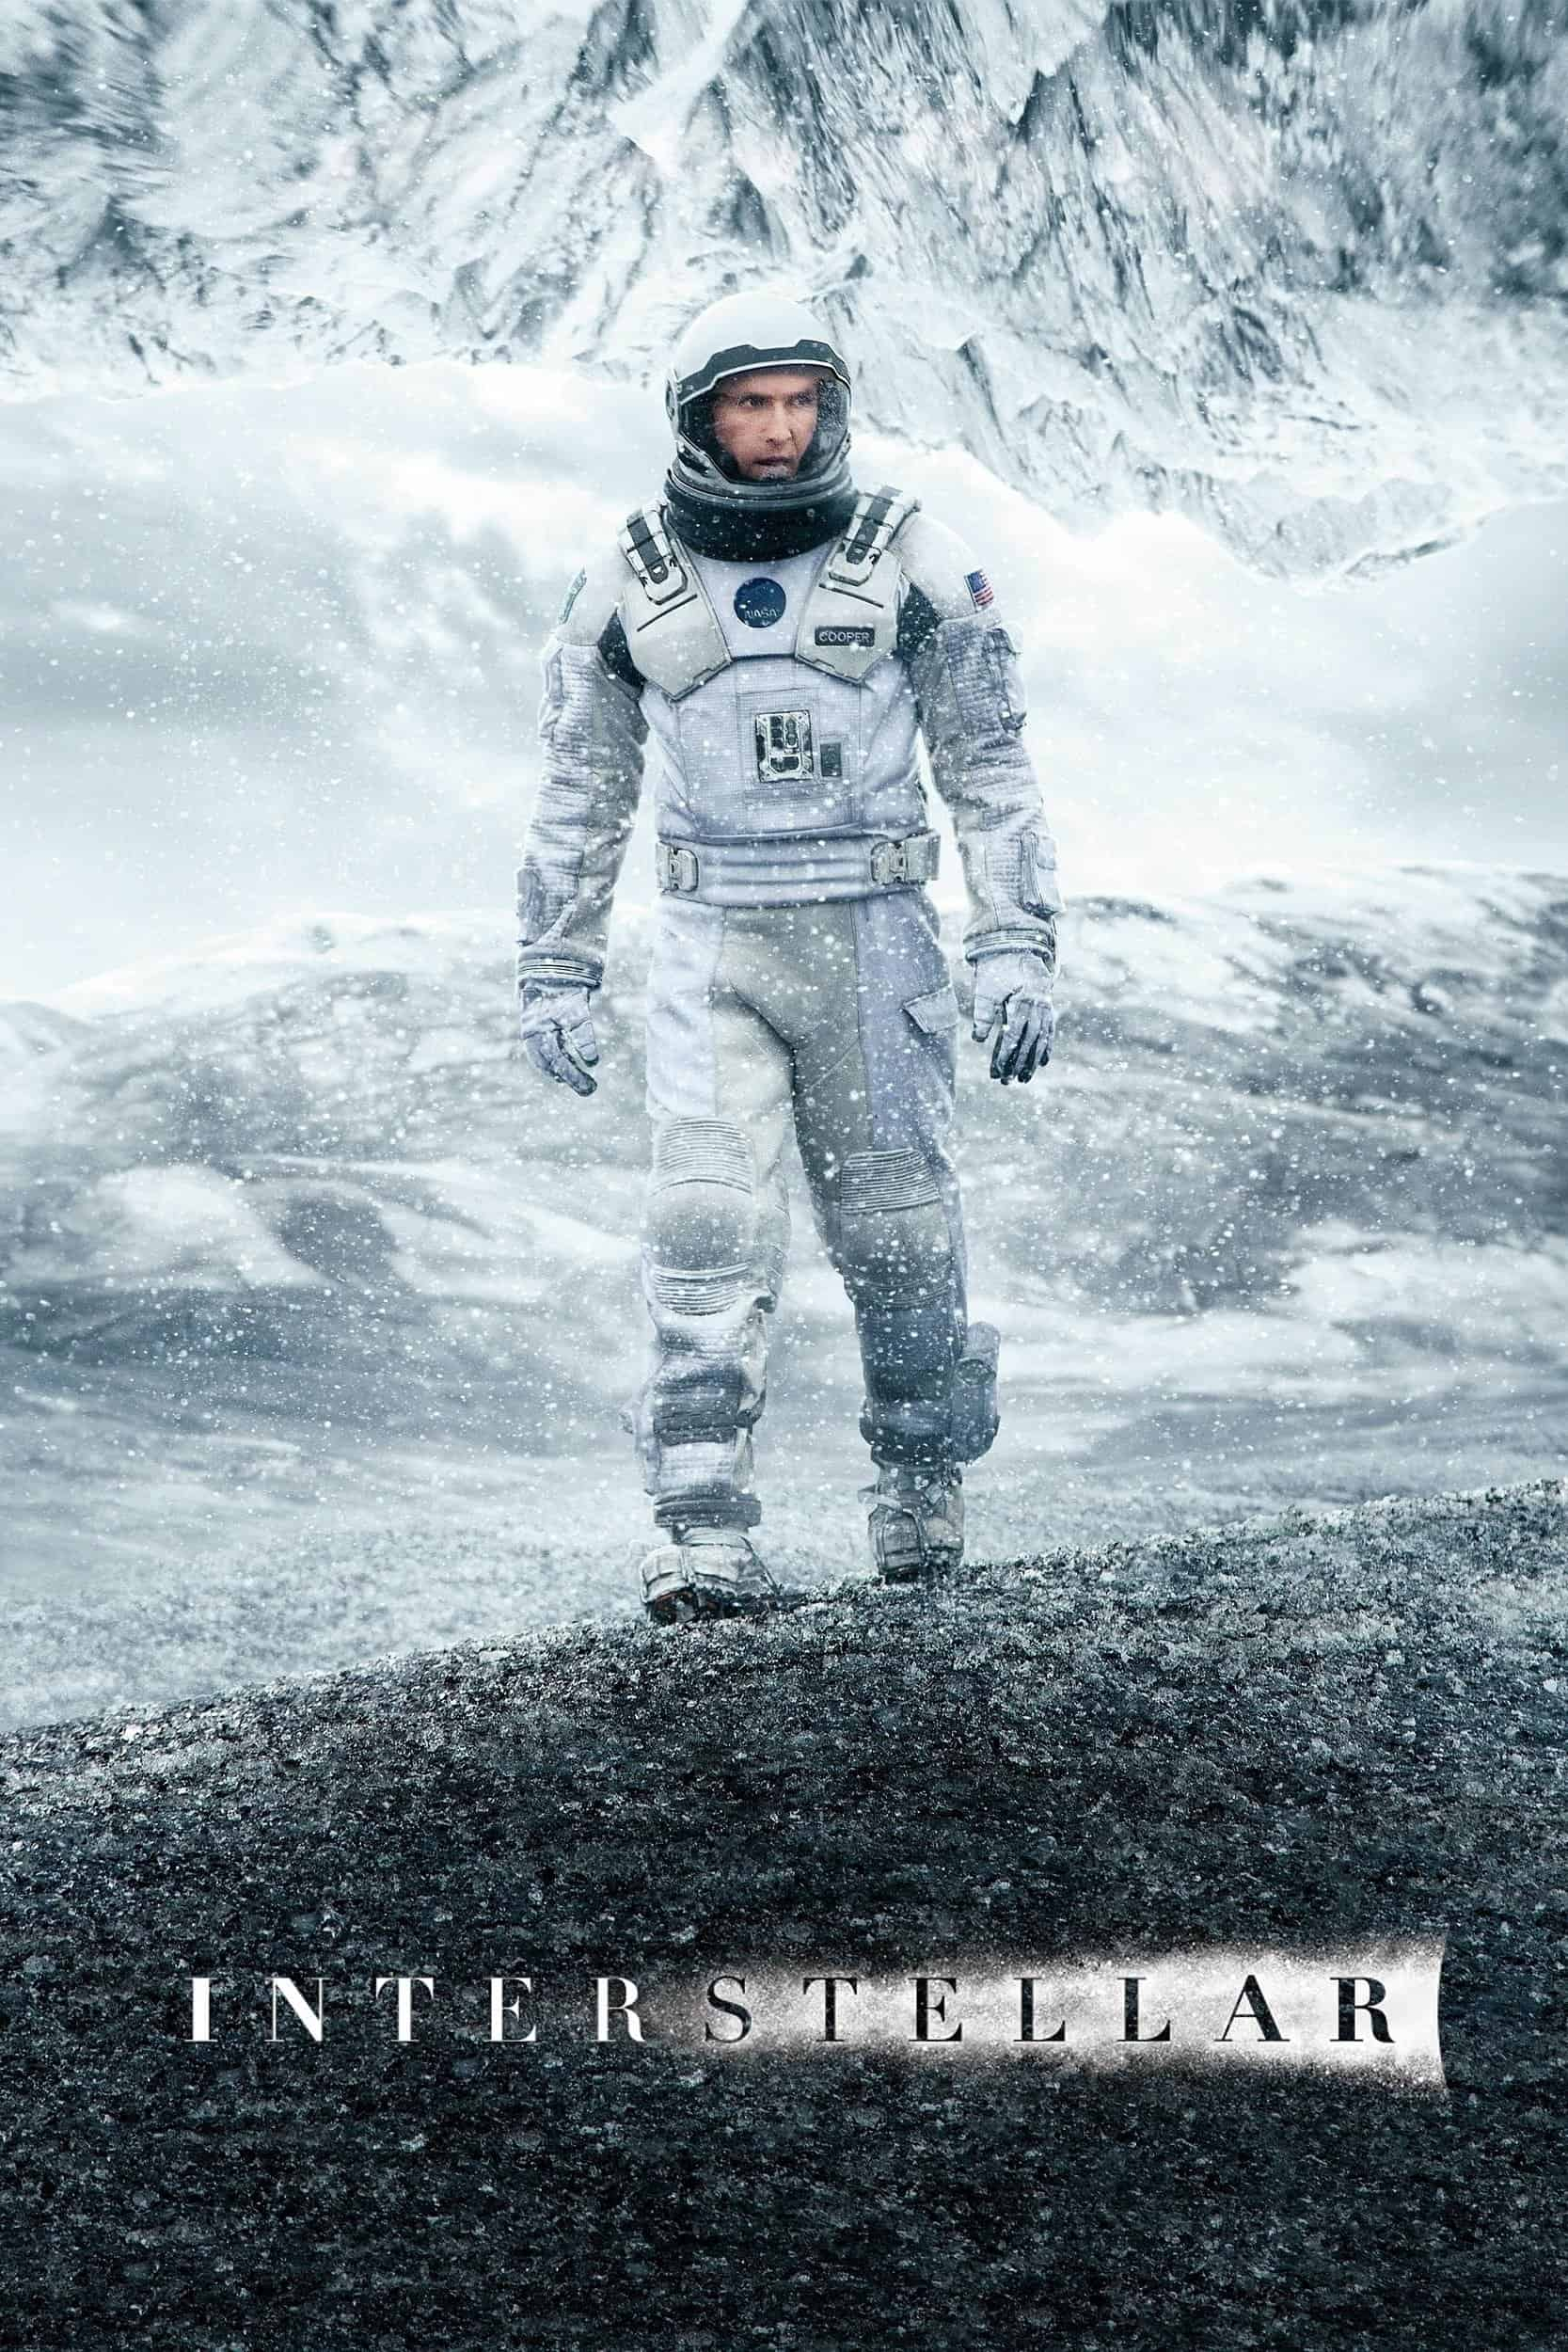 Interstellar, 2014